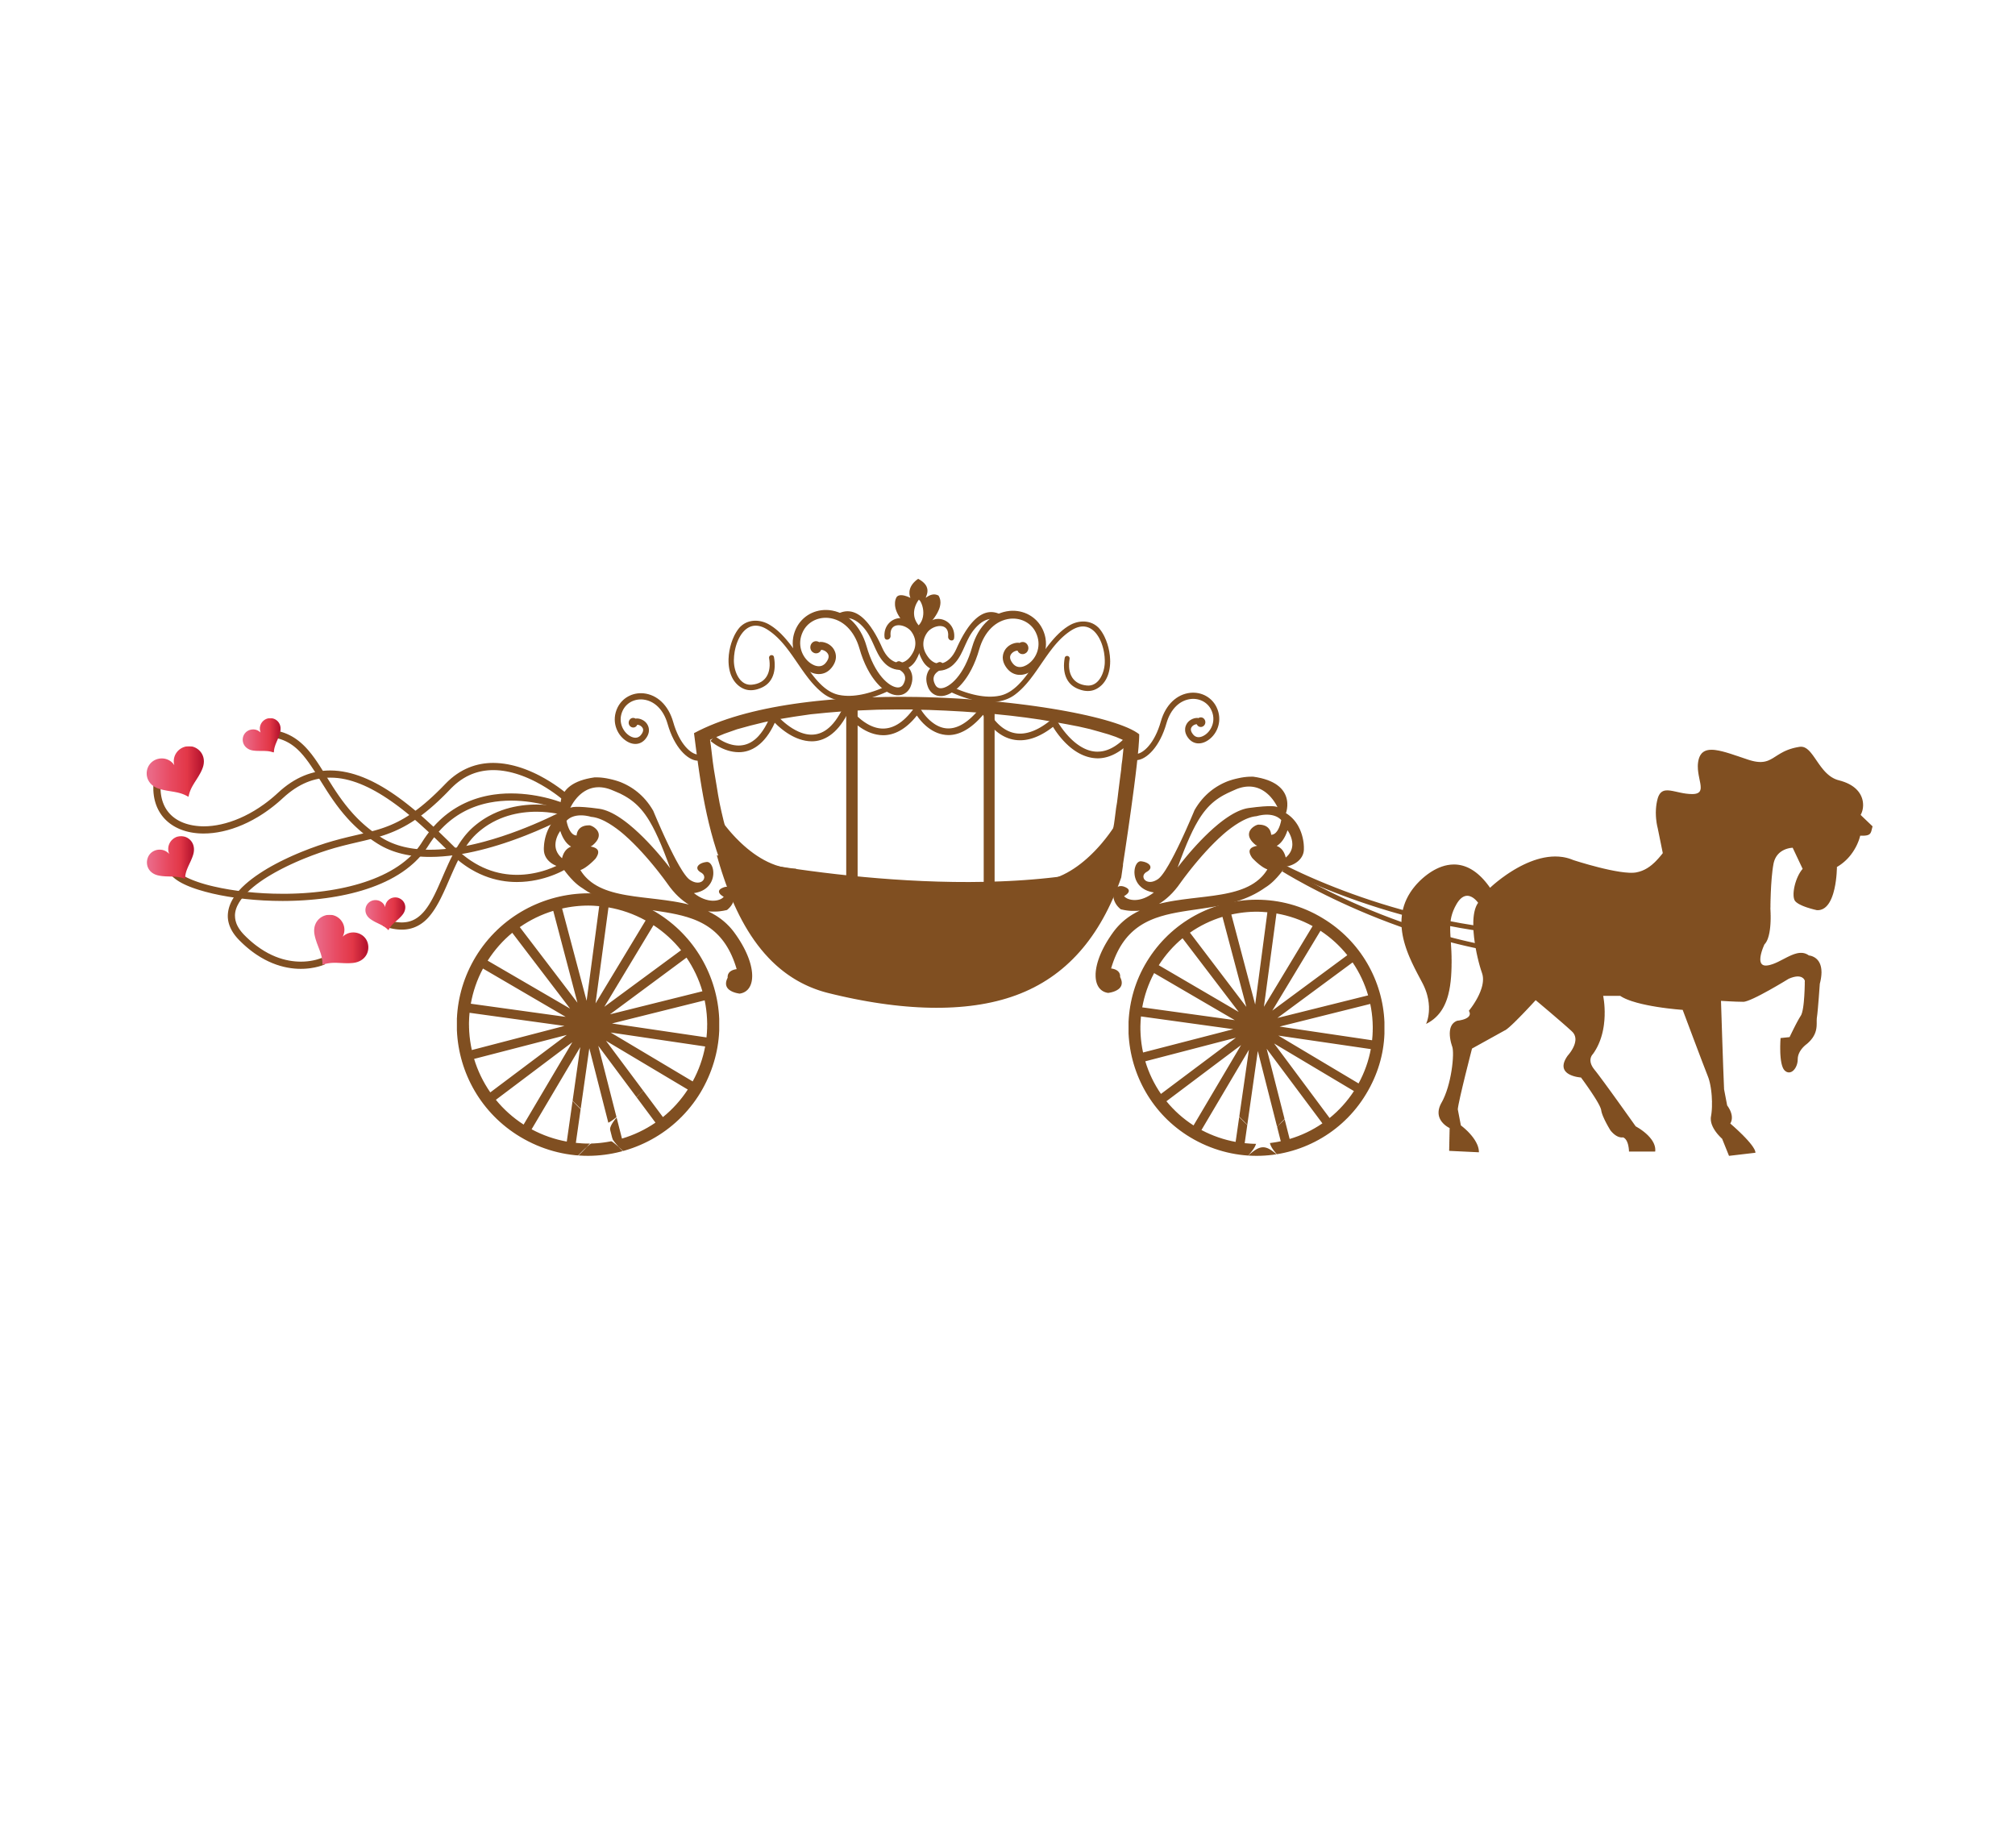 banner transparent download Invitation greeting card illustration. Carriage clipart wedding carriage.